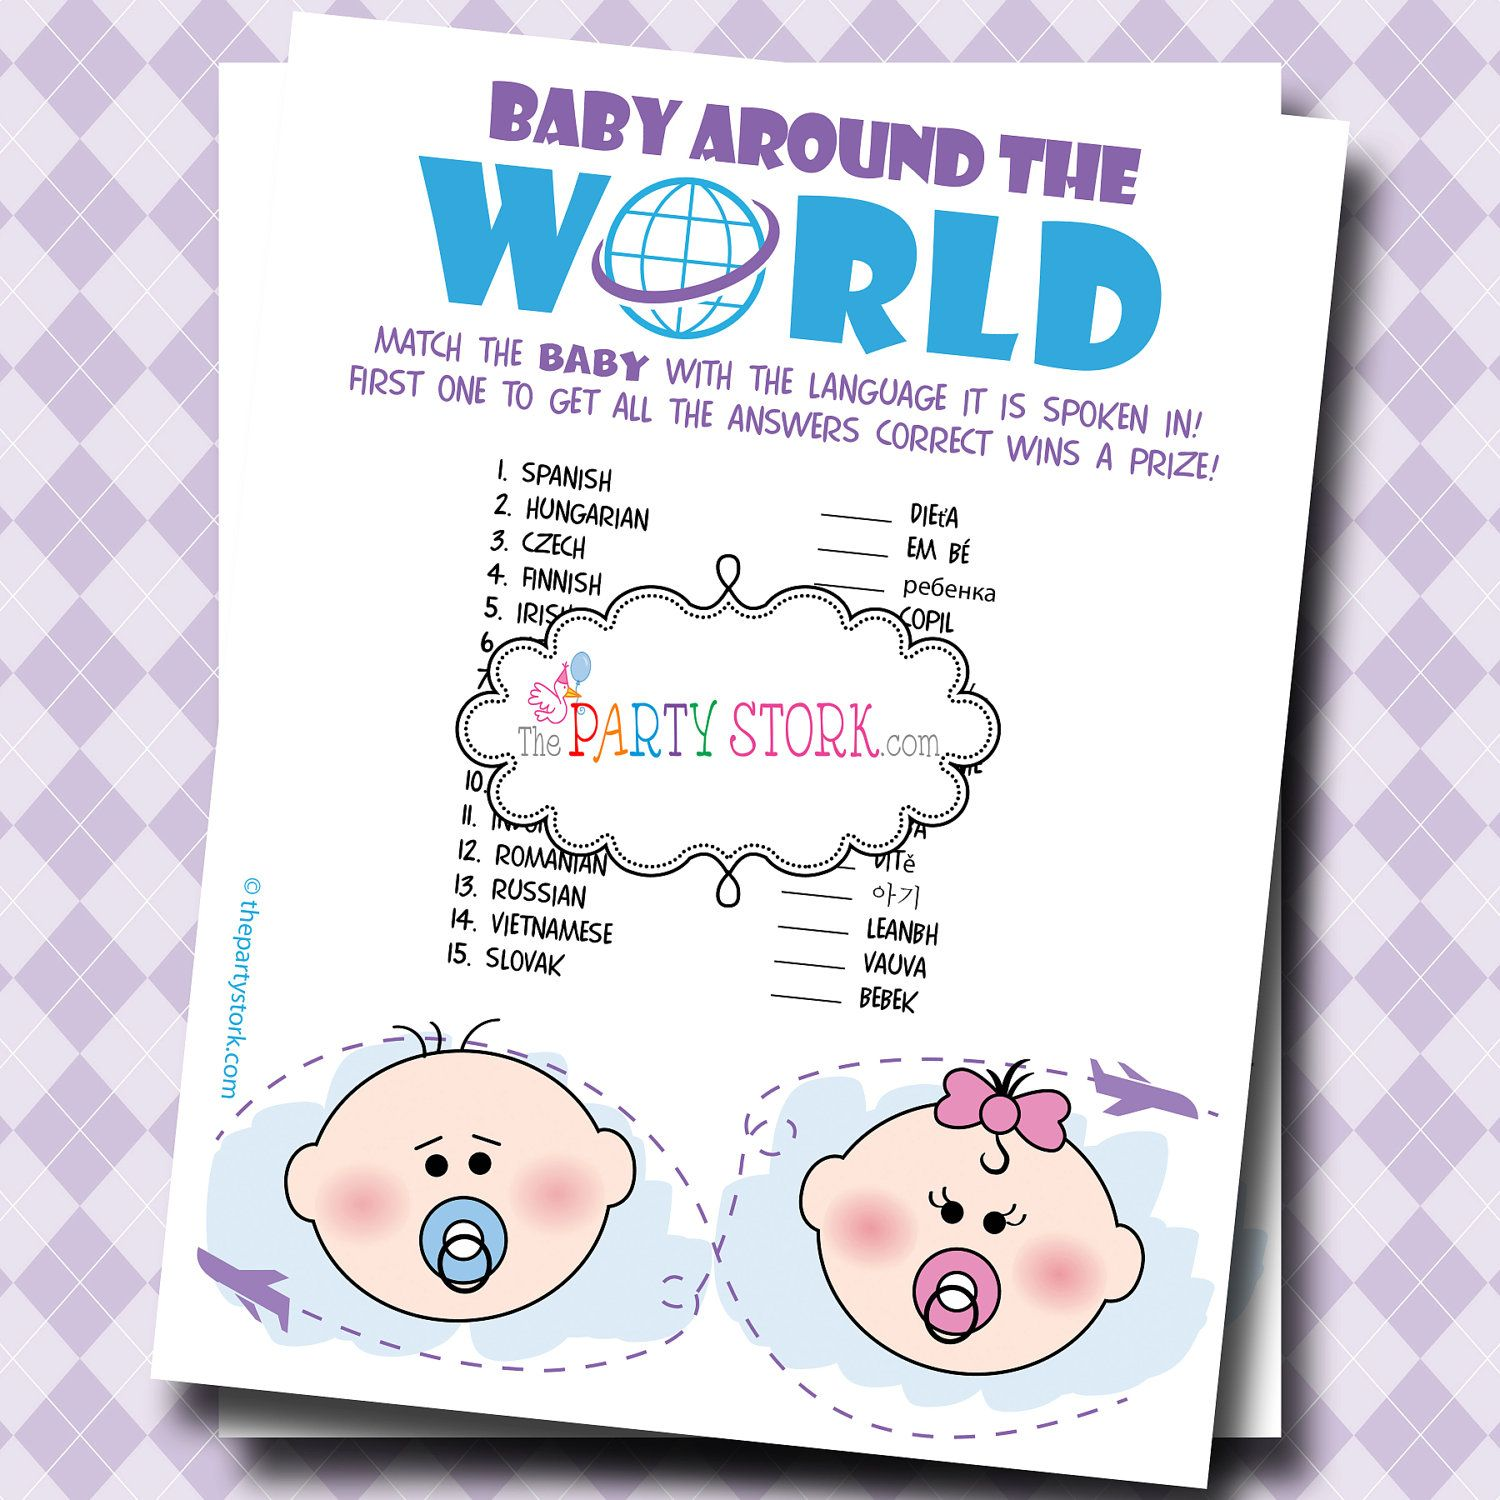 by the party stork baby shower games pinterest baby shower games